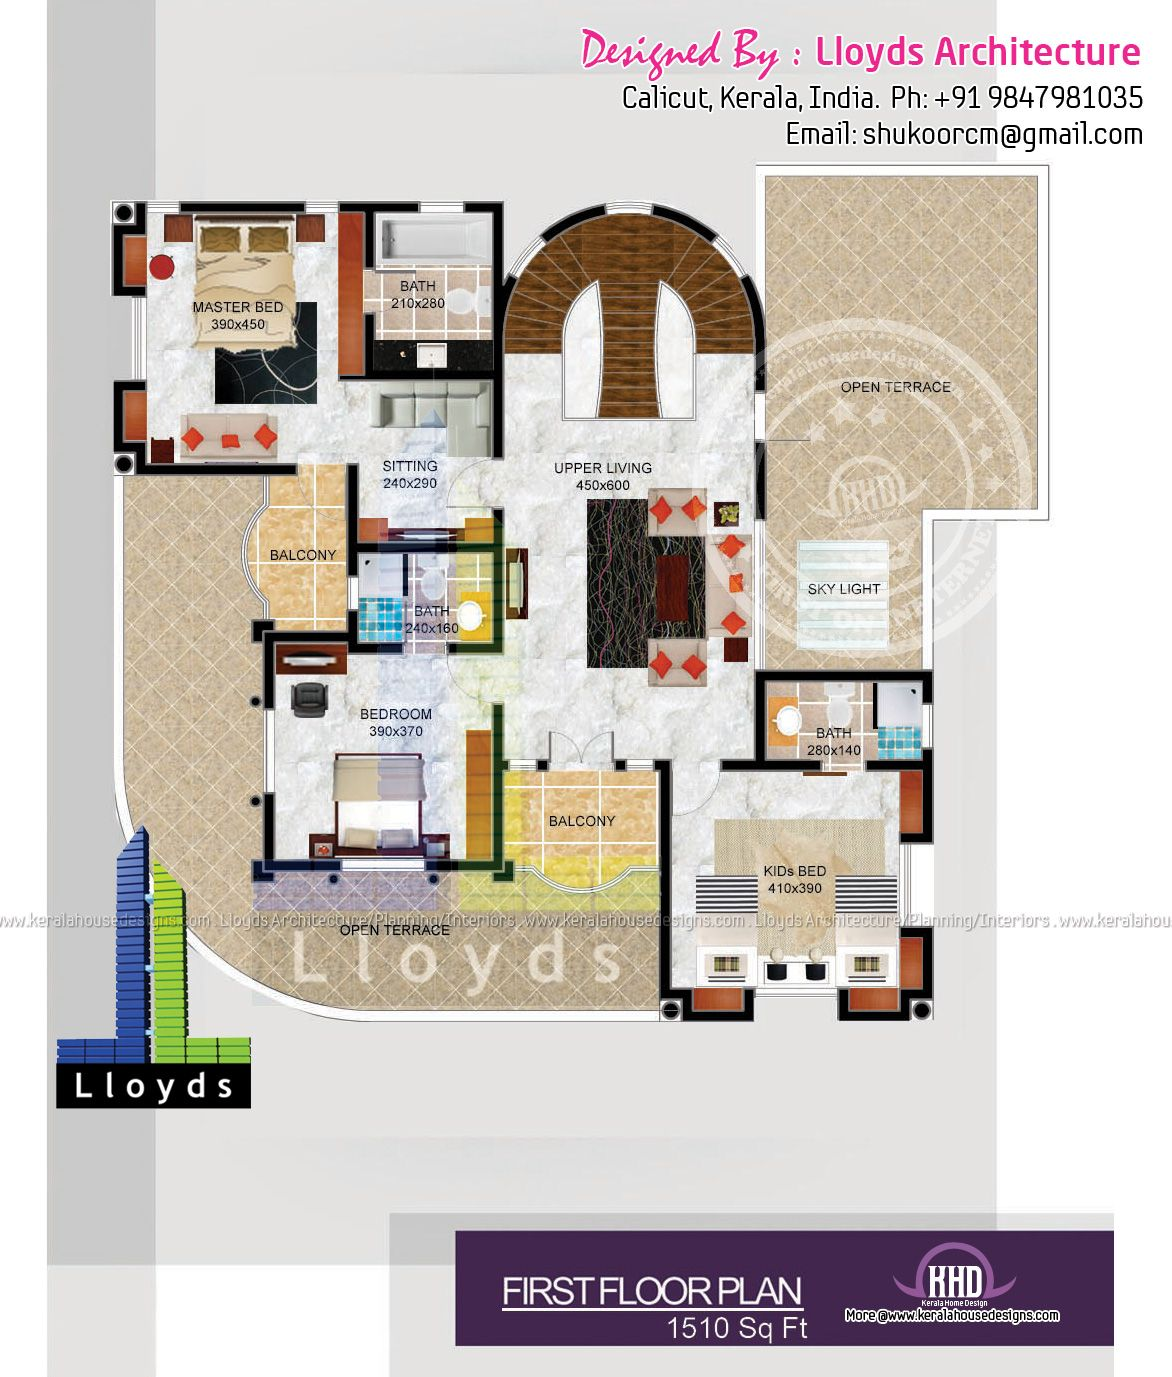 5 Bedroom Luxurious Bungalow Floor Plan And 3d View Best Home